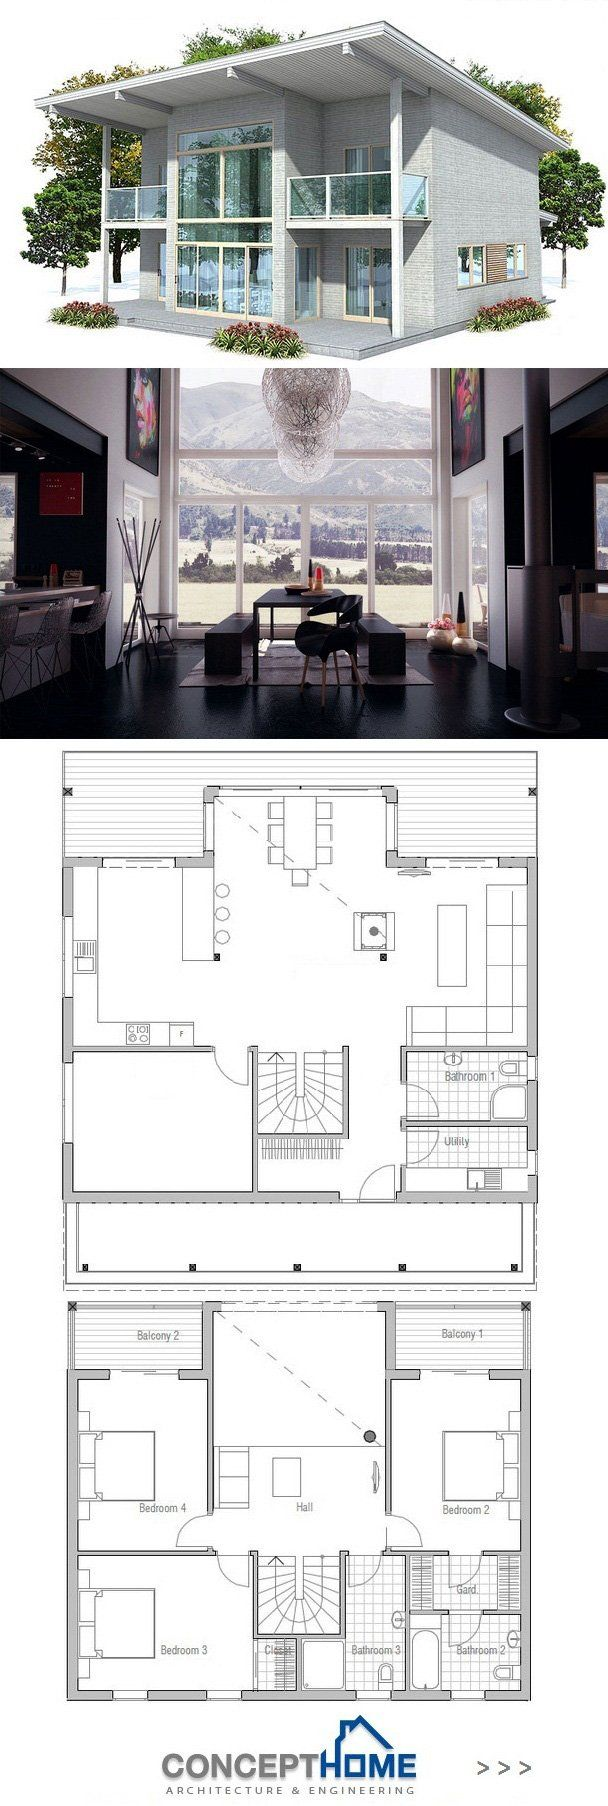 More images and FREE floor plan PDF